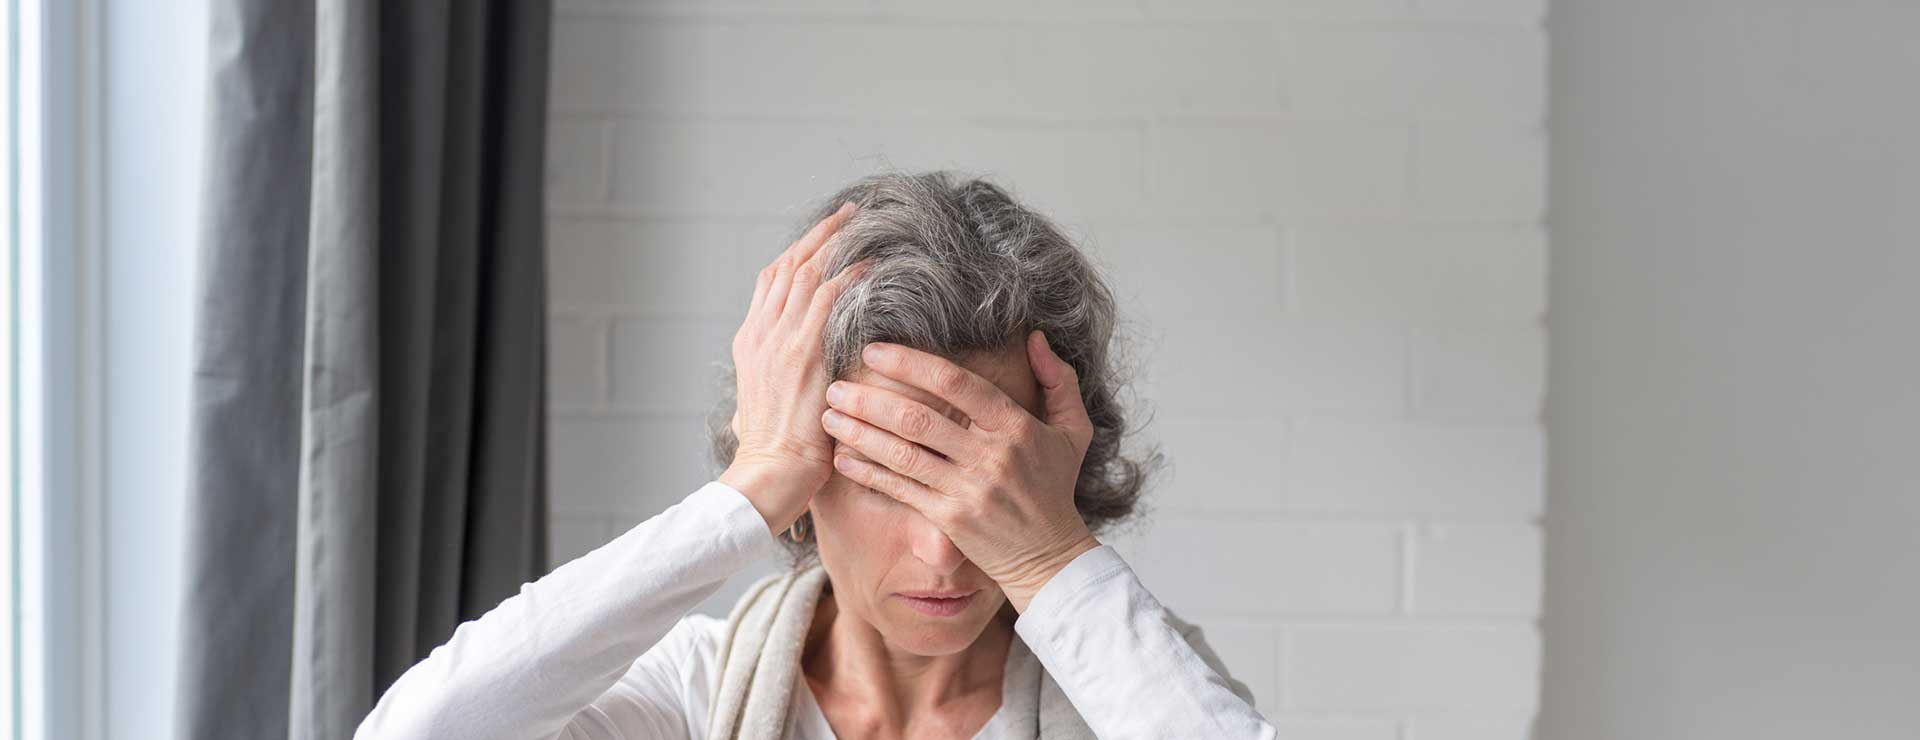 Older woman holding face in pain